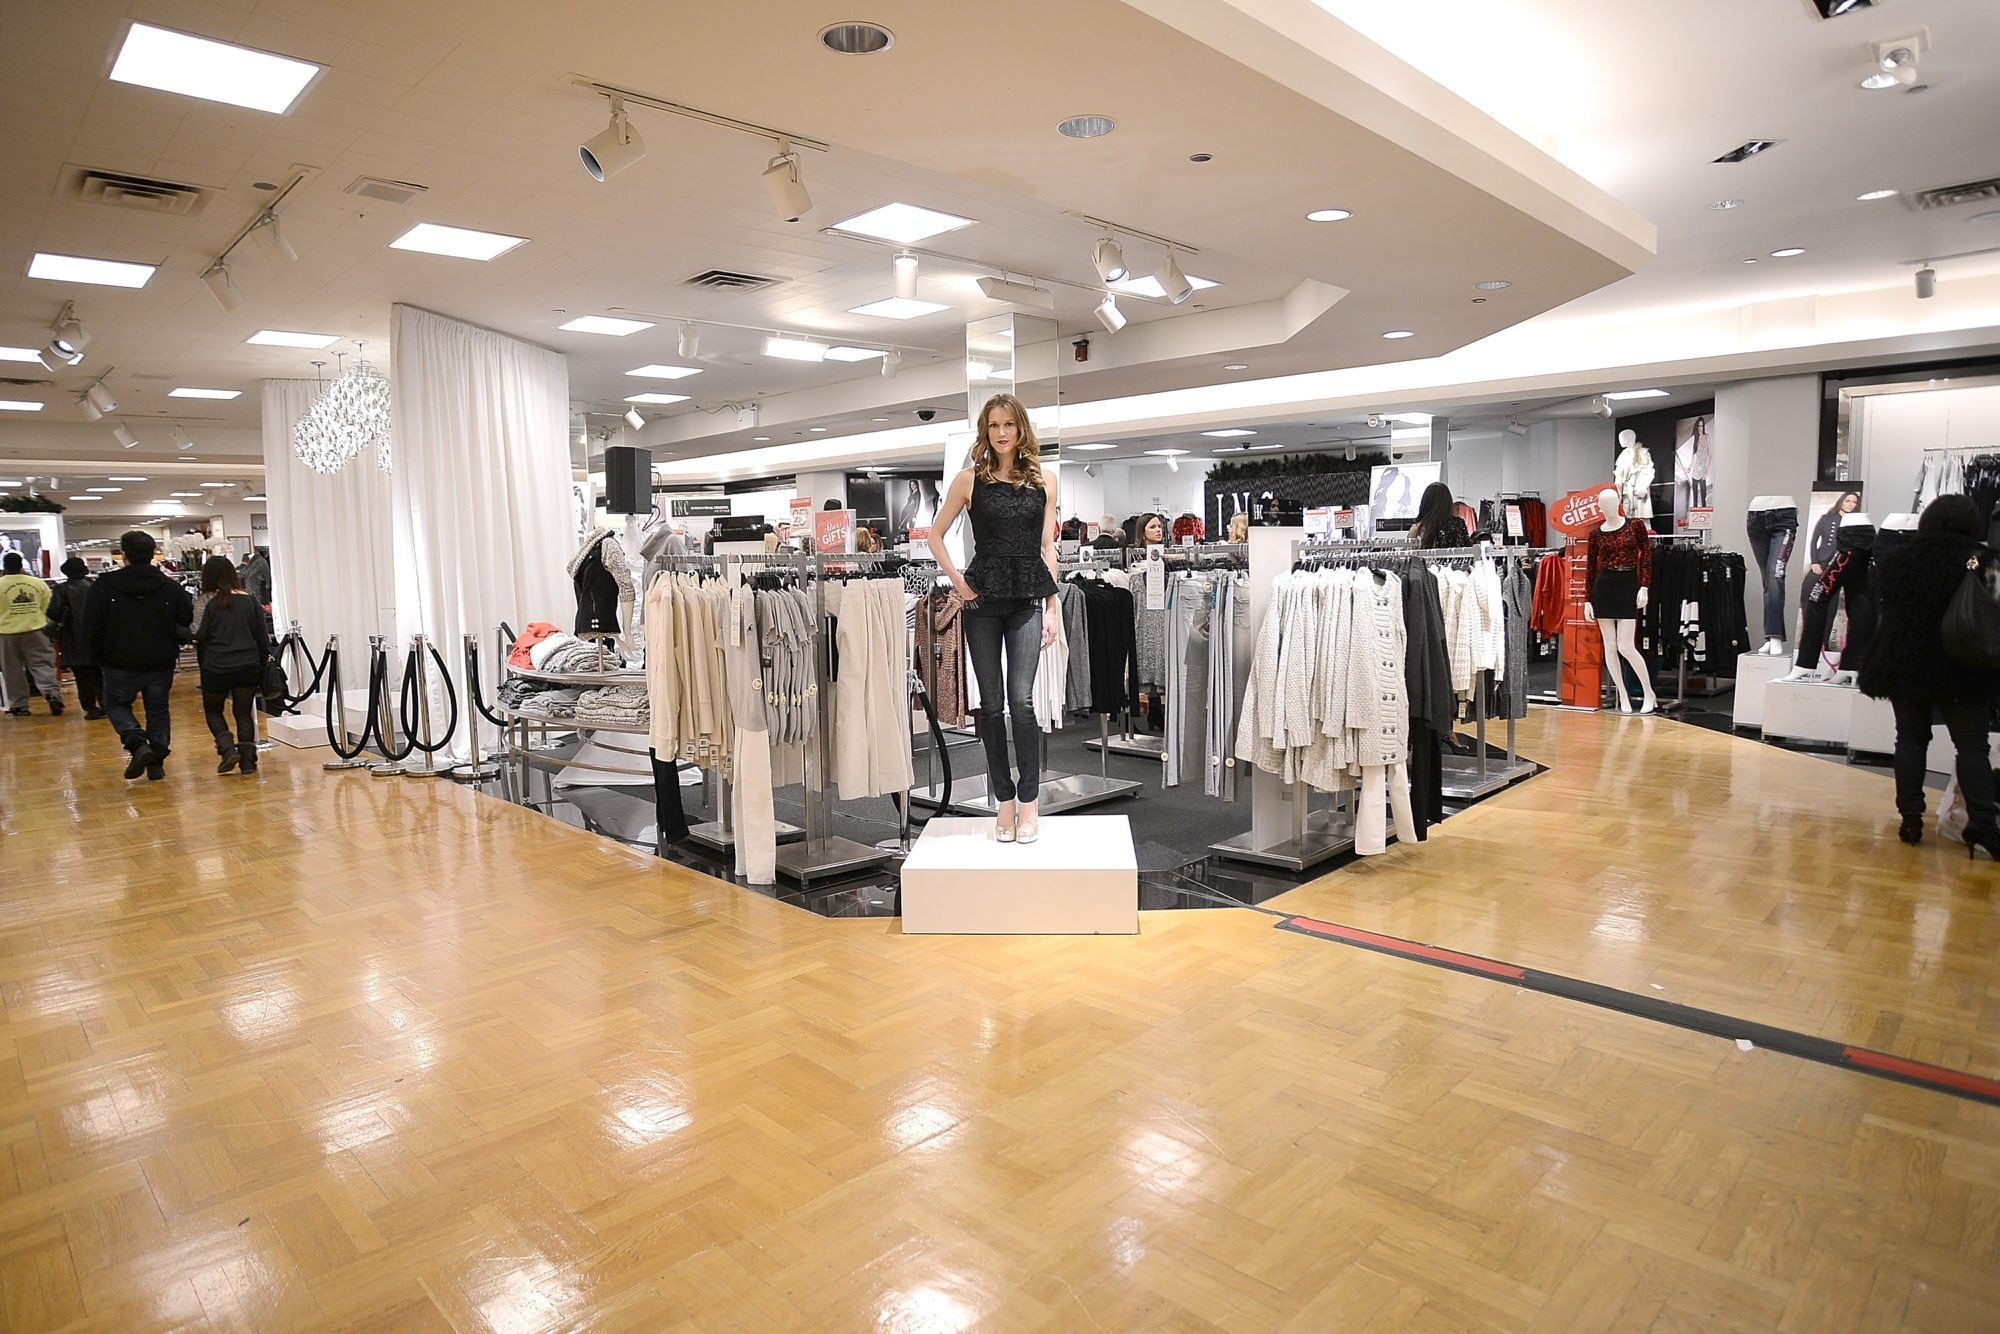 Macy's, which has mall stores locally at Walden Galleria, Boulevard, Eastern Hills and McKinley, will release a list of sites this fall that it will close in 2016.